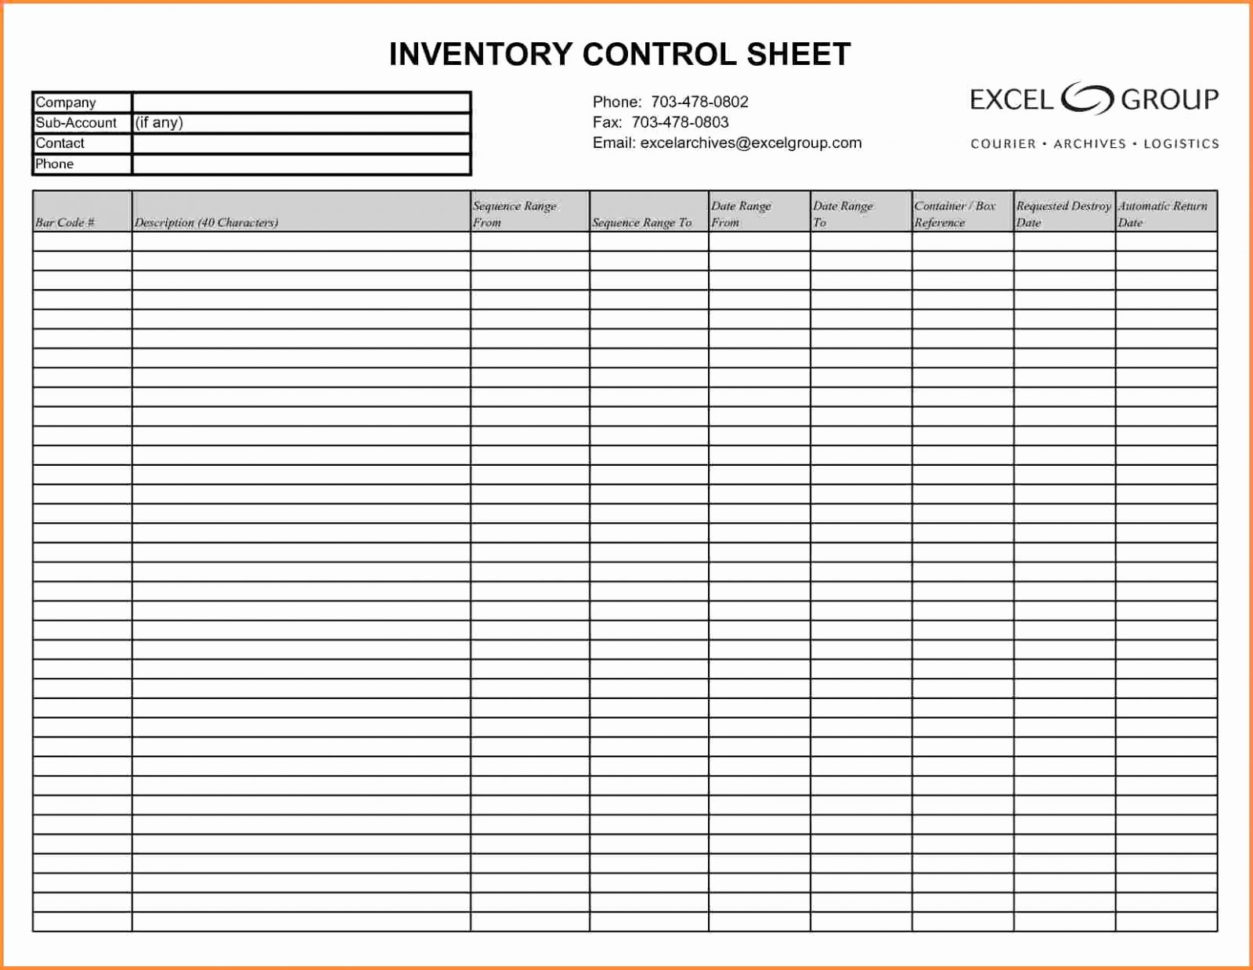 Vending Machine Business Spreadsheet In Example Of Vending Machine Inventory Spreadsheet Excel  Pianotreasure